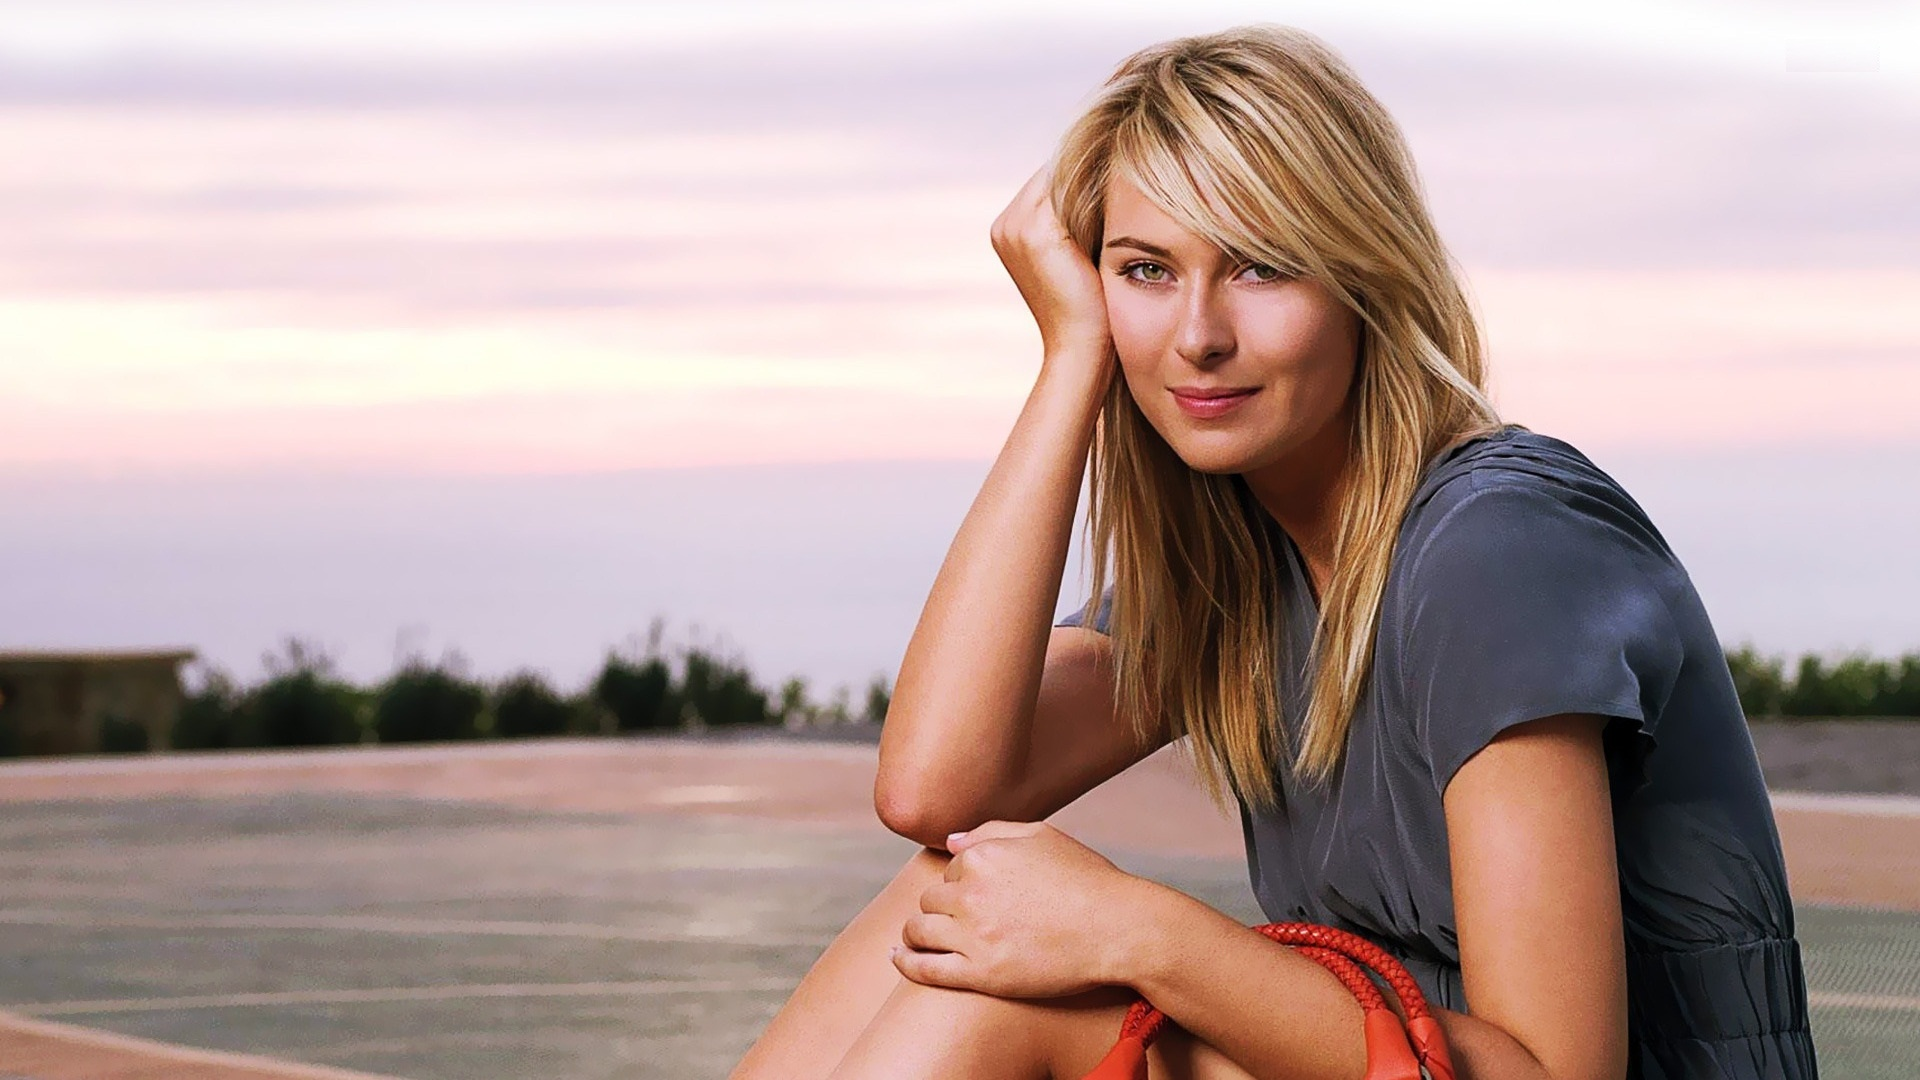 Maria Sharapova Wallpapers 1920x1080 7GN791Q   4USkY 1920x1080